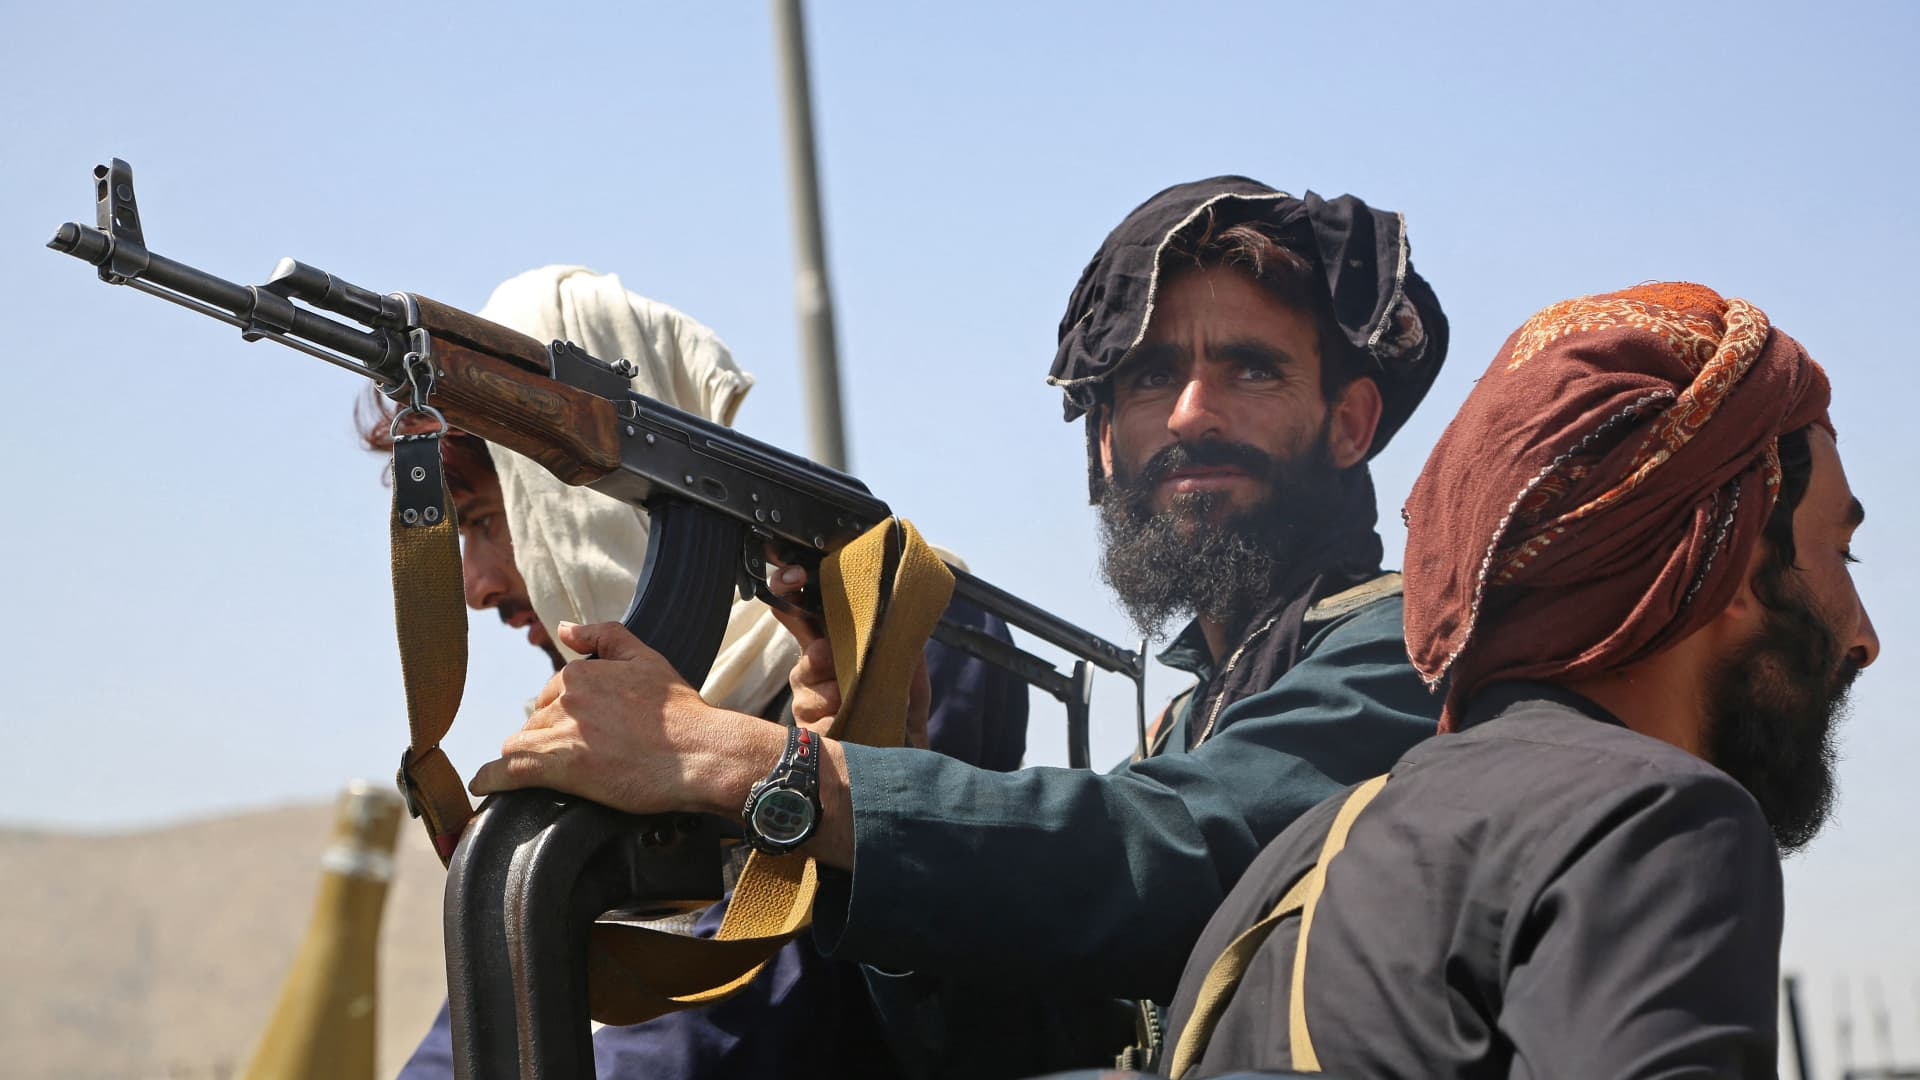 Taliban fighters stand guard in a vehicle along the roadside in Kabul on August 16, 2021, after a stunningly swift end to Afghanistan's 20-year war, as thousands of people mobbed the city's airport trying to flee the group's feared hardline brand of Islamist rule.